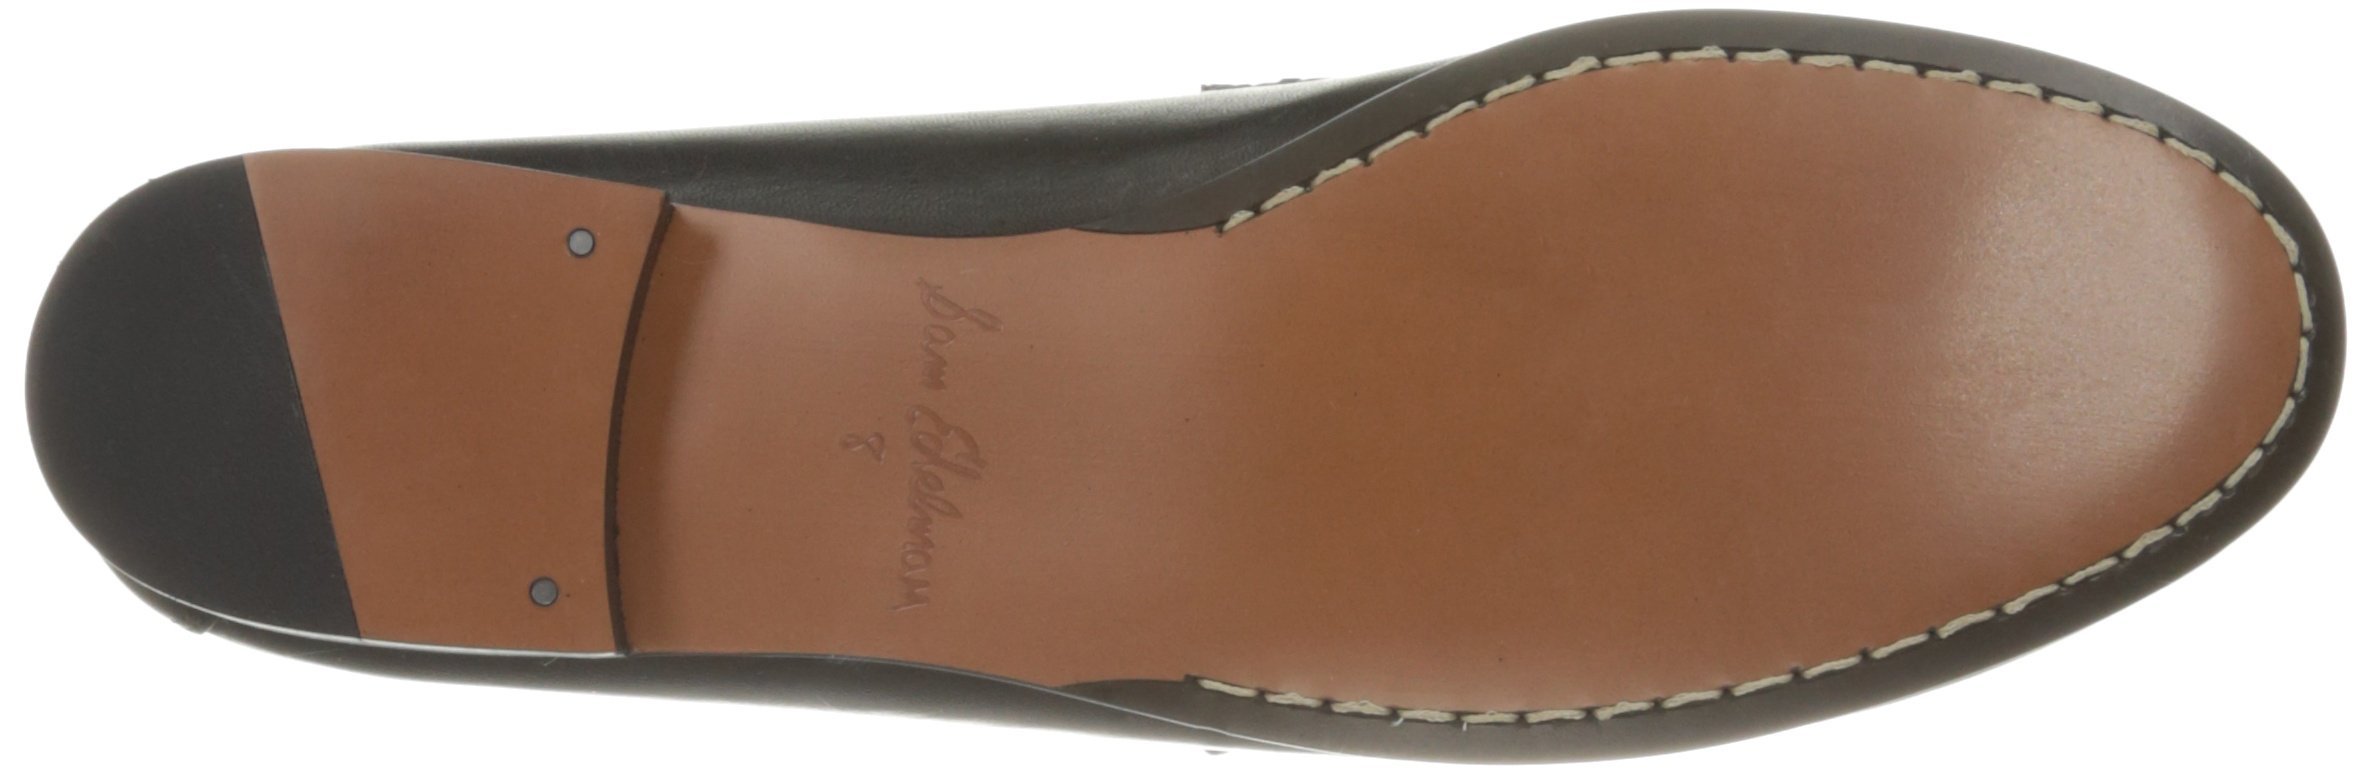 Sam Edelman Women's Therese Slip-On Loafer, Black, 7 M US by Sam Edelman (Image #3)